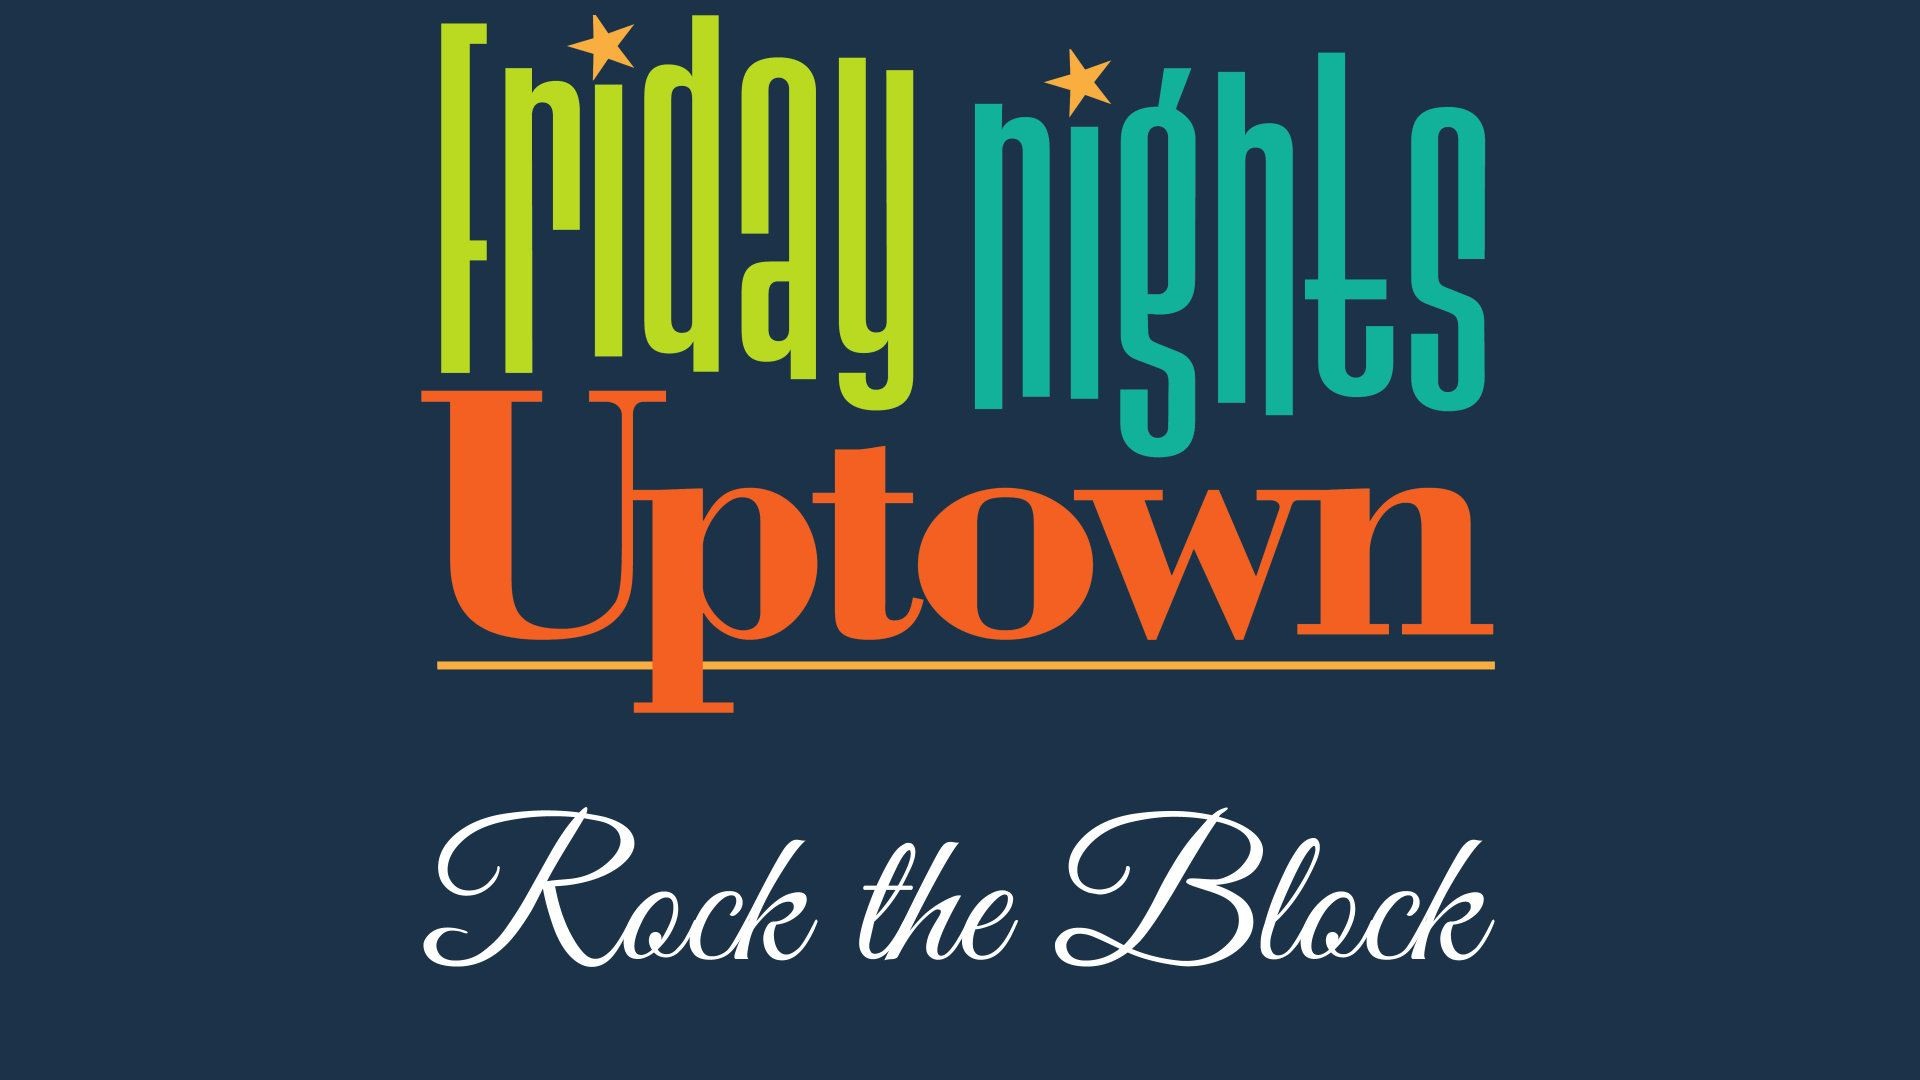 Friday Nights Uptown event image